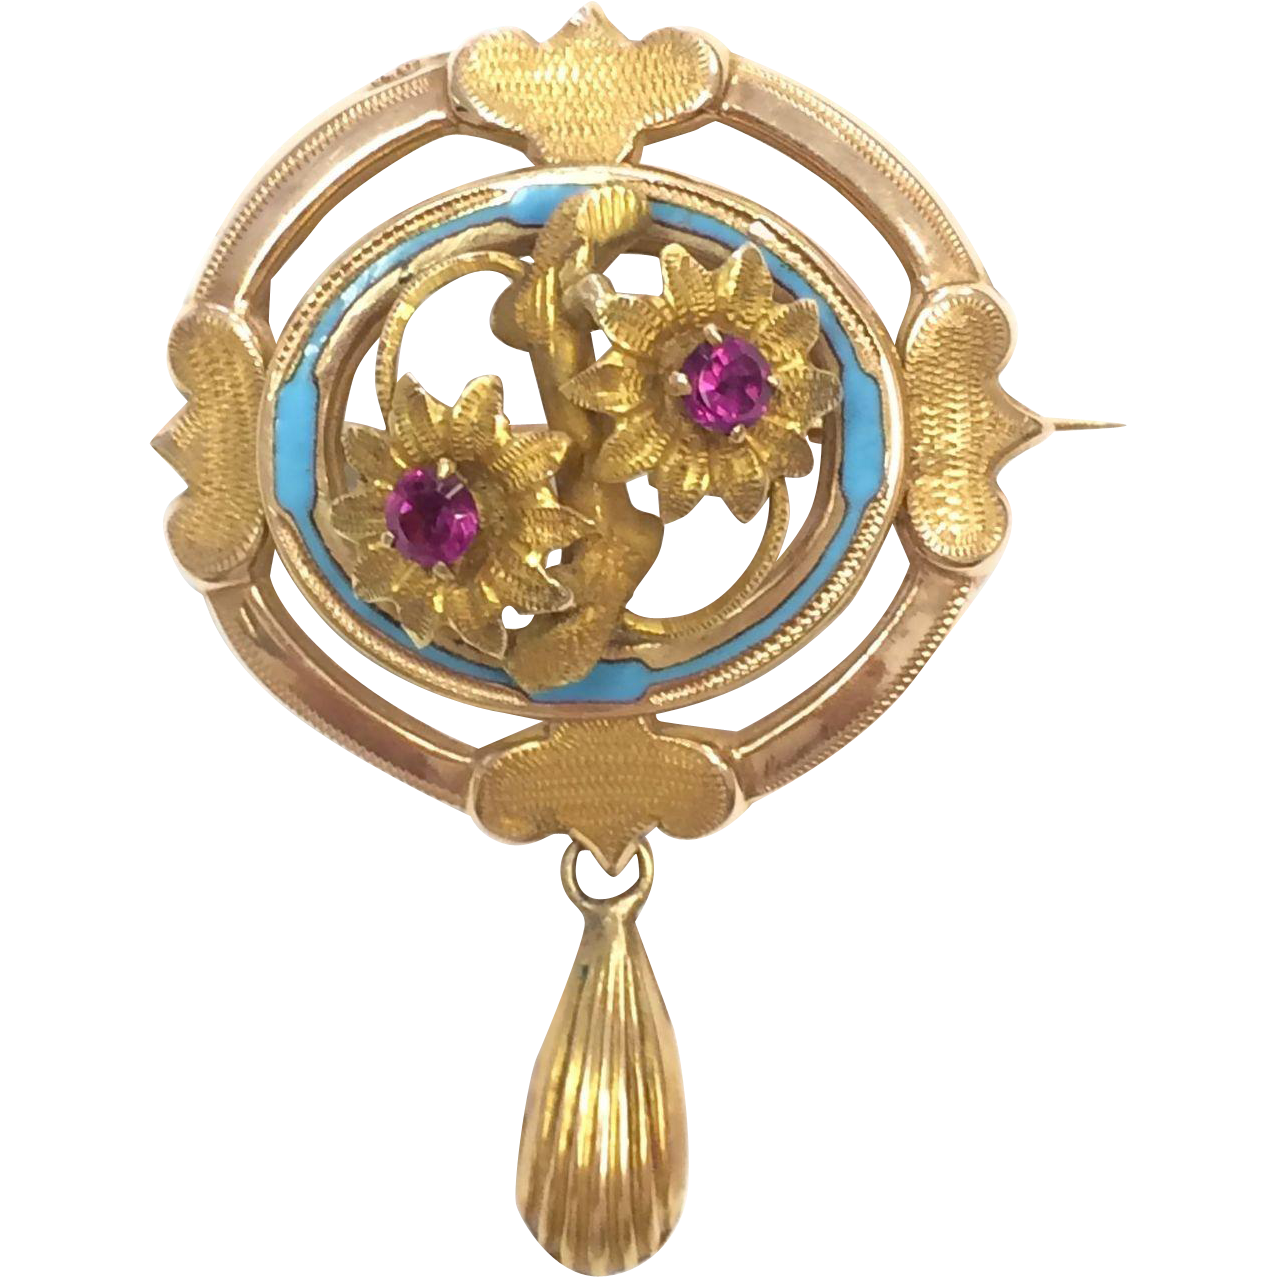 Antique Victorian 14k yellow gold Brooch with Flowers, Pink Stones and Light Blue Enamel